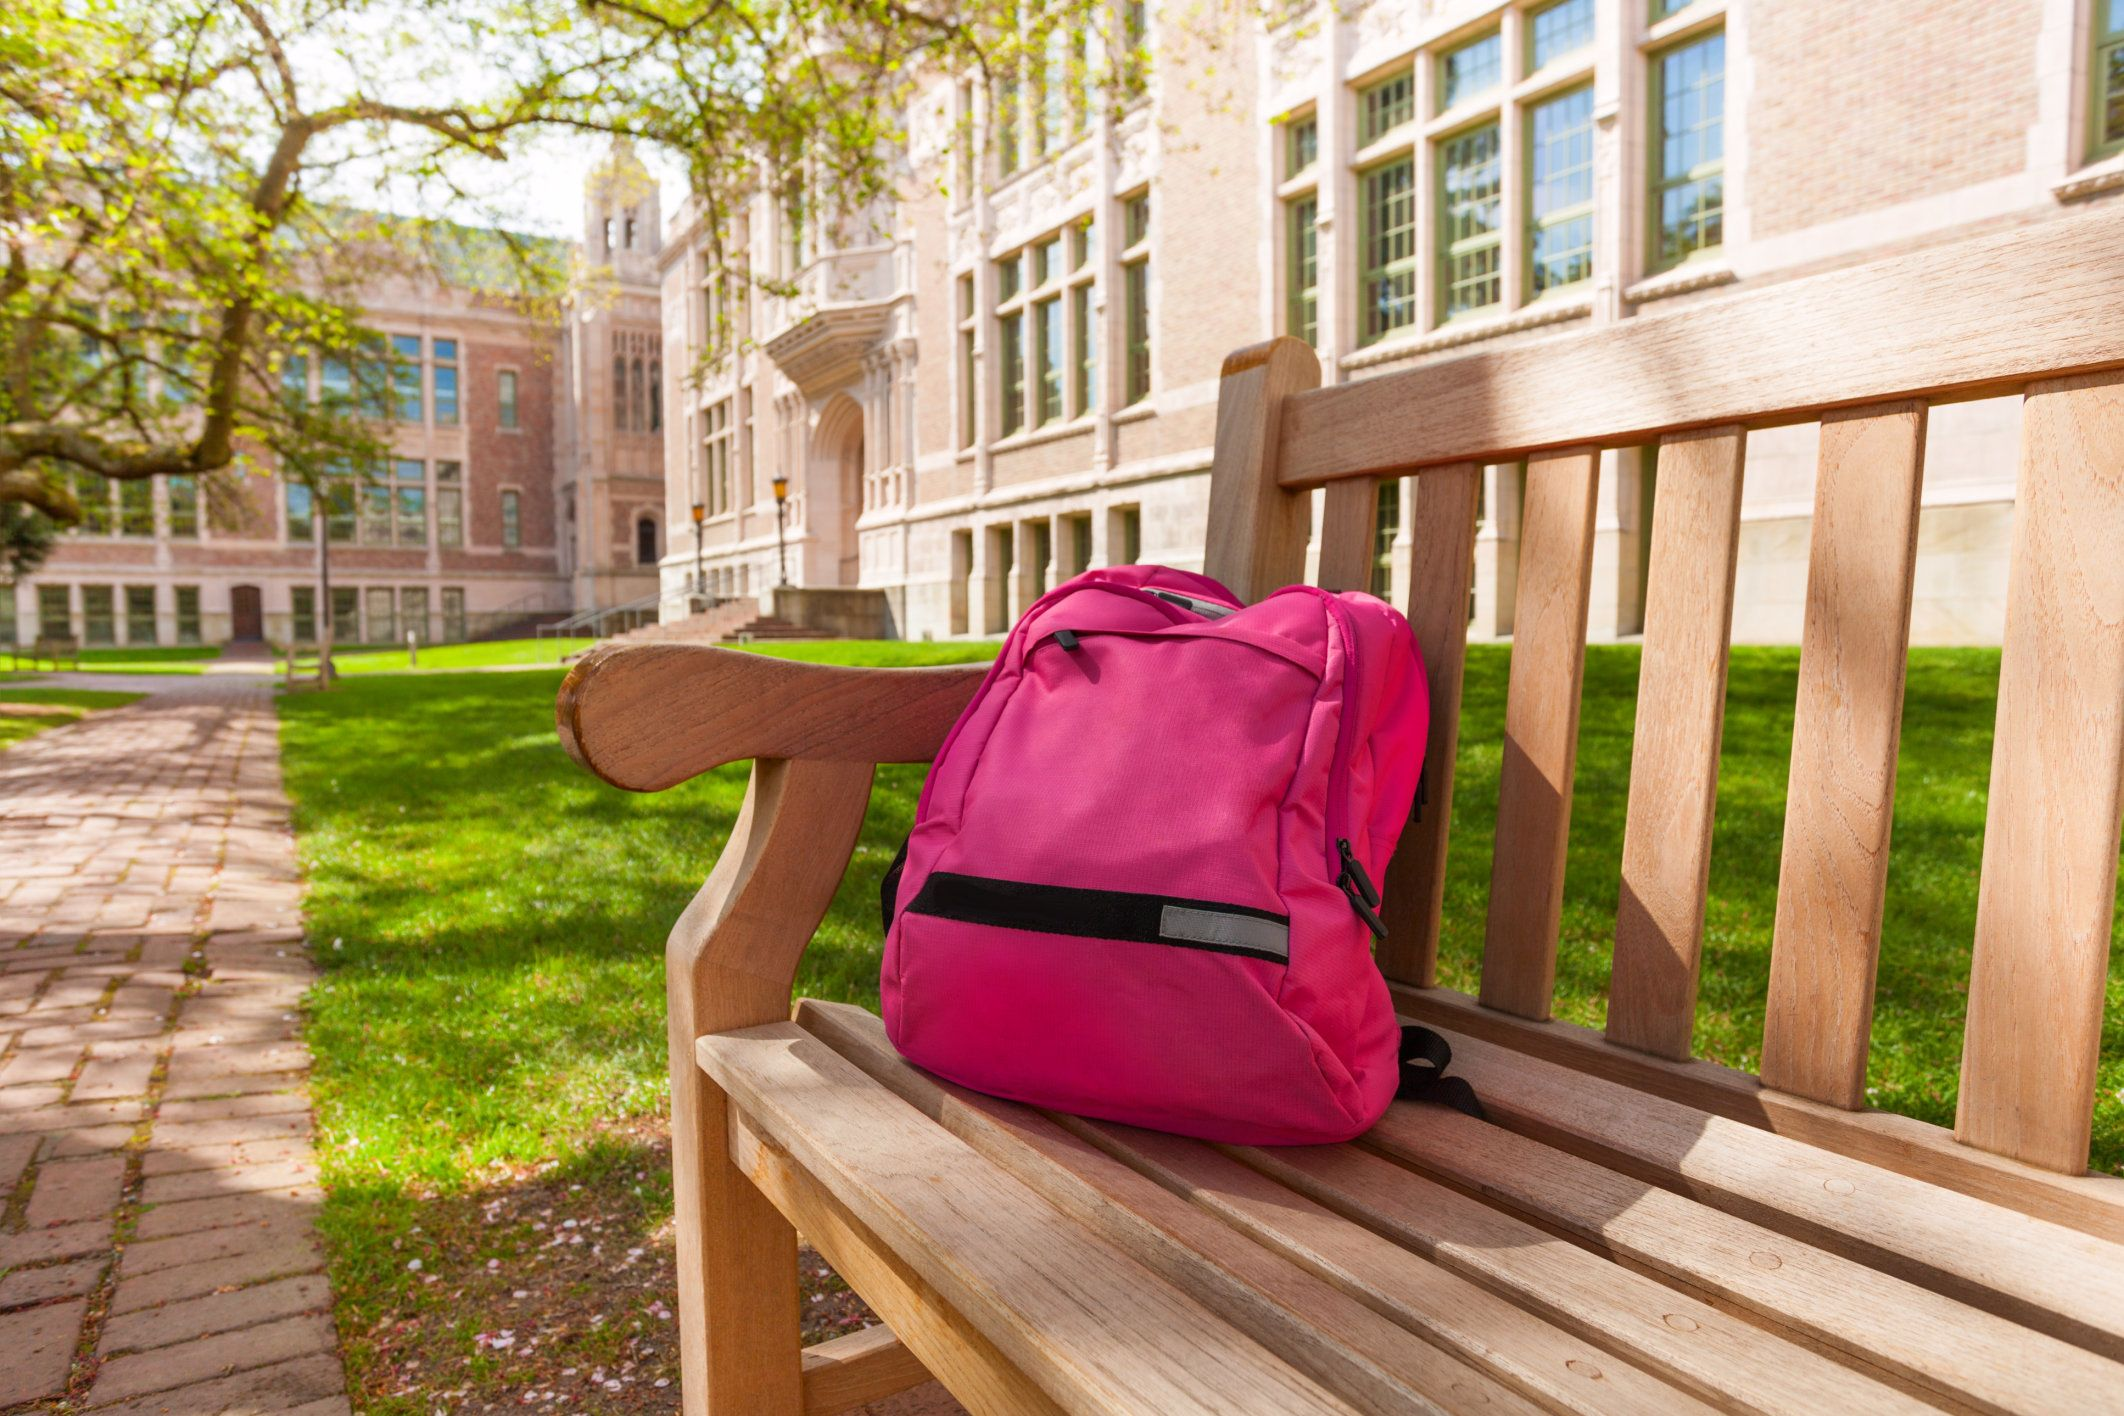 Backpack laying on the bench with educational buildings on the background after classes